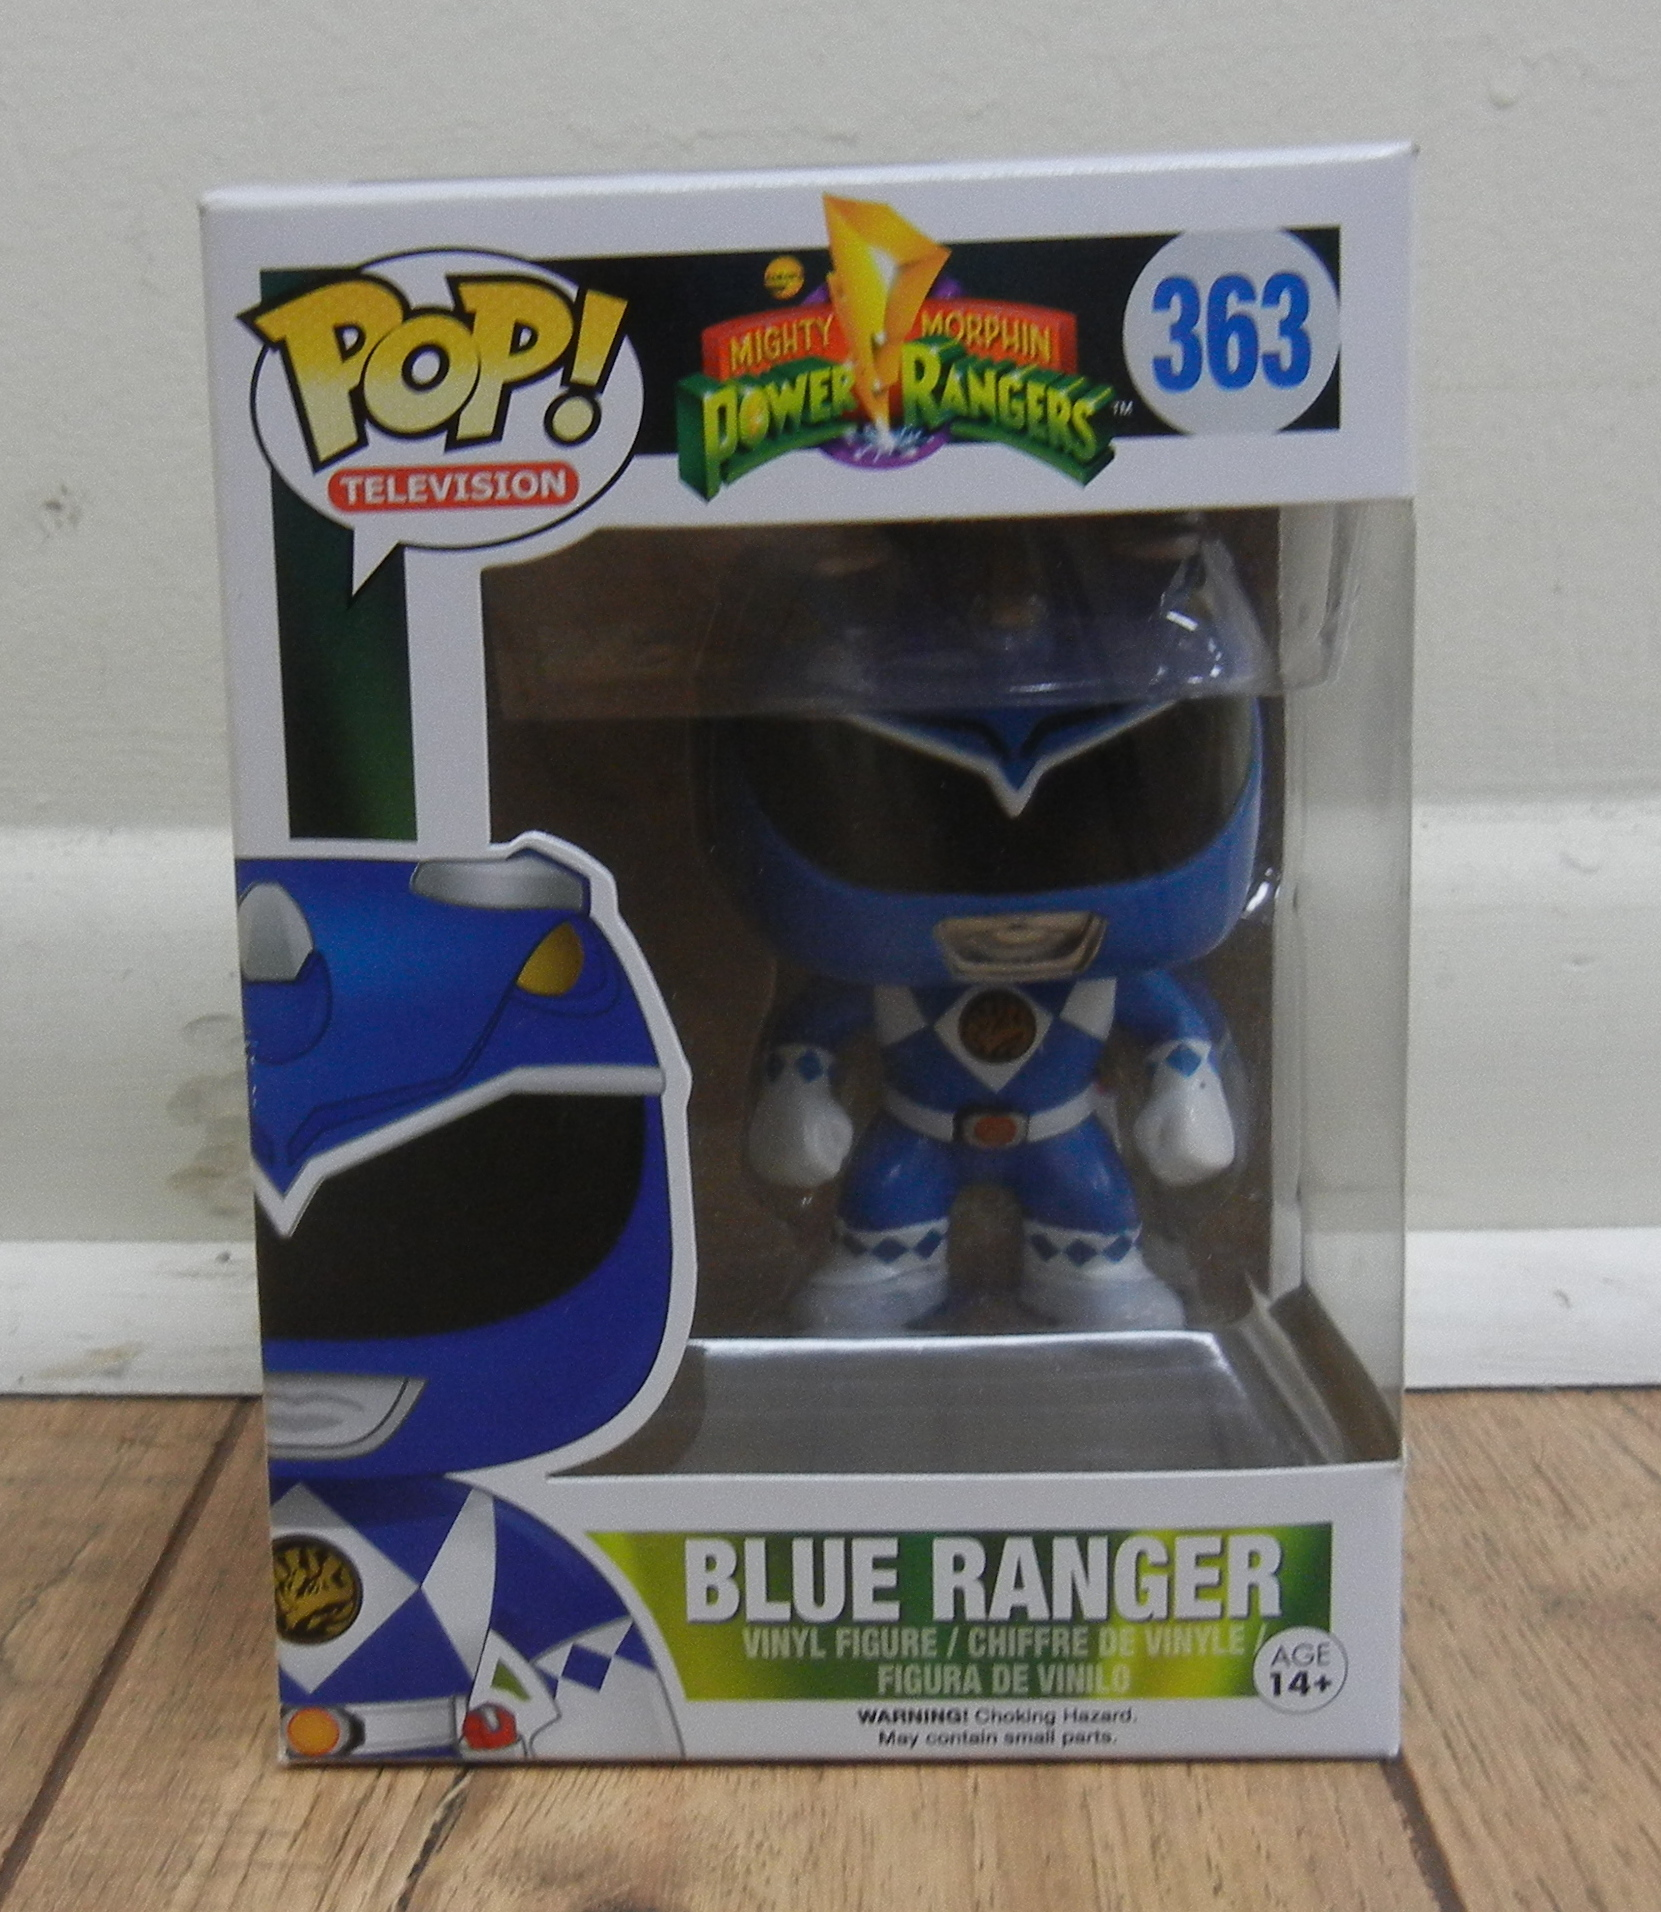 FUNKO POP! - POWER RANGERS - BLUE RANGER - TOYS